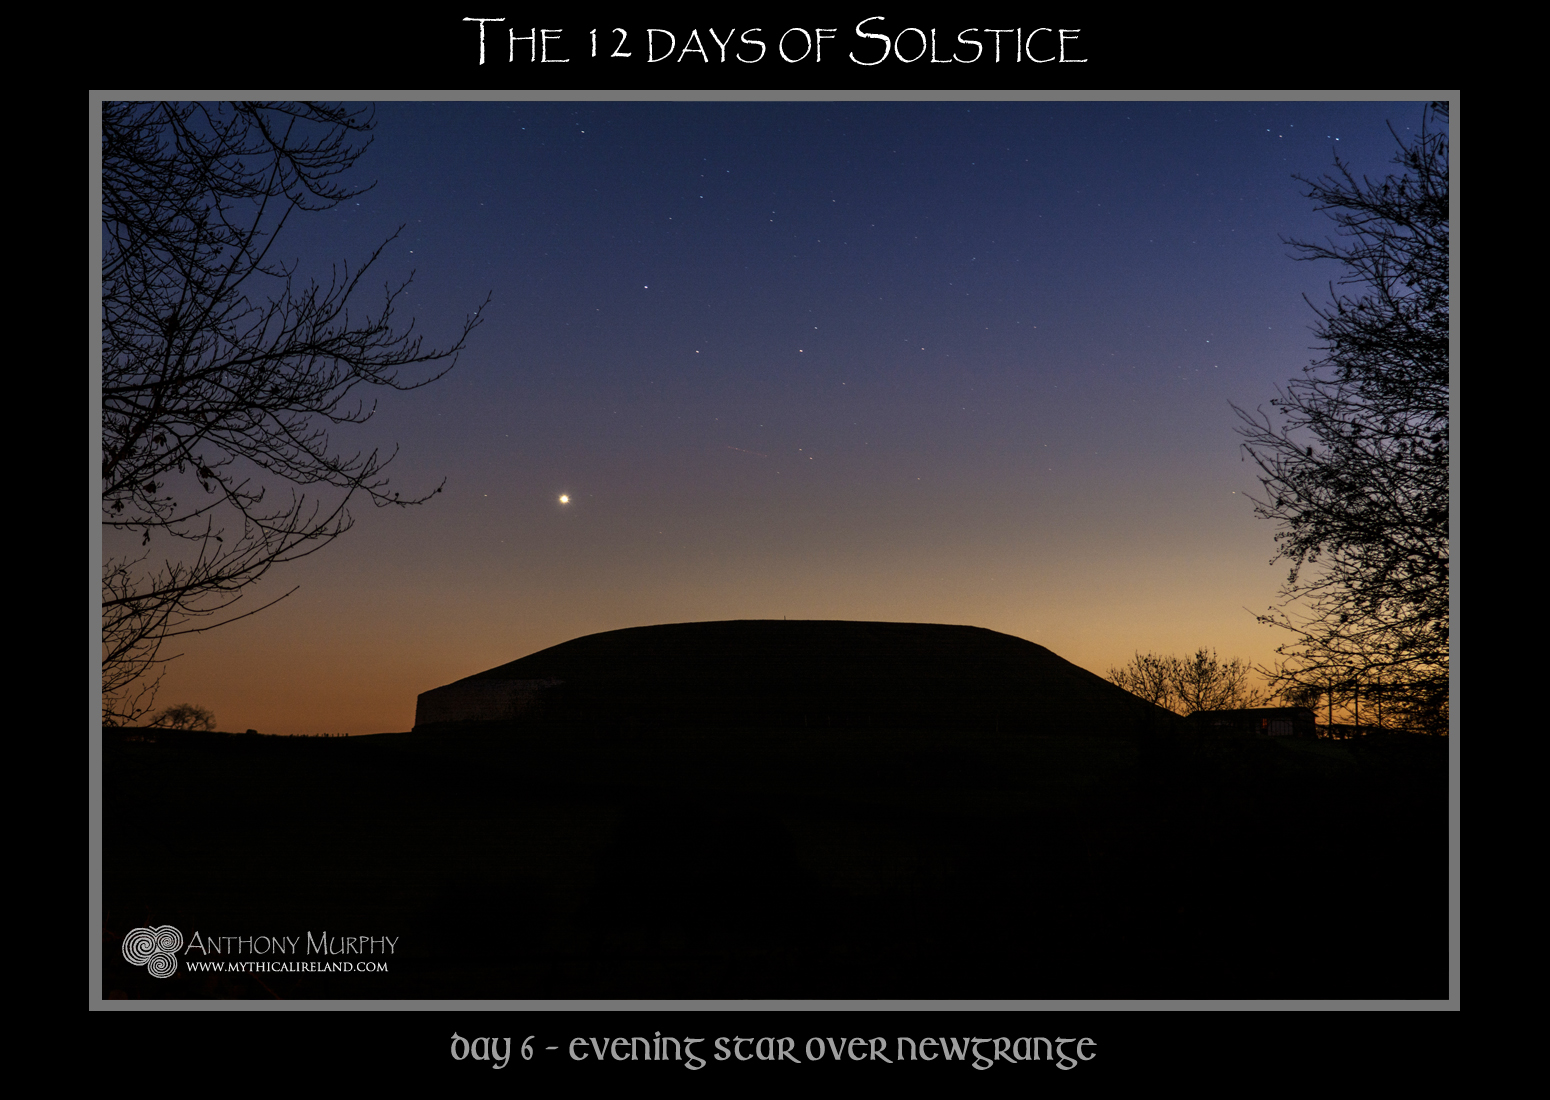 b3aa0a3638 Mythical Ireland blog  The 12 days of Solstice - Day 6 - Venus